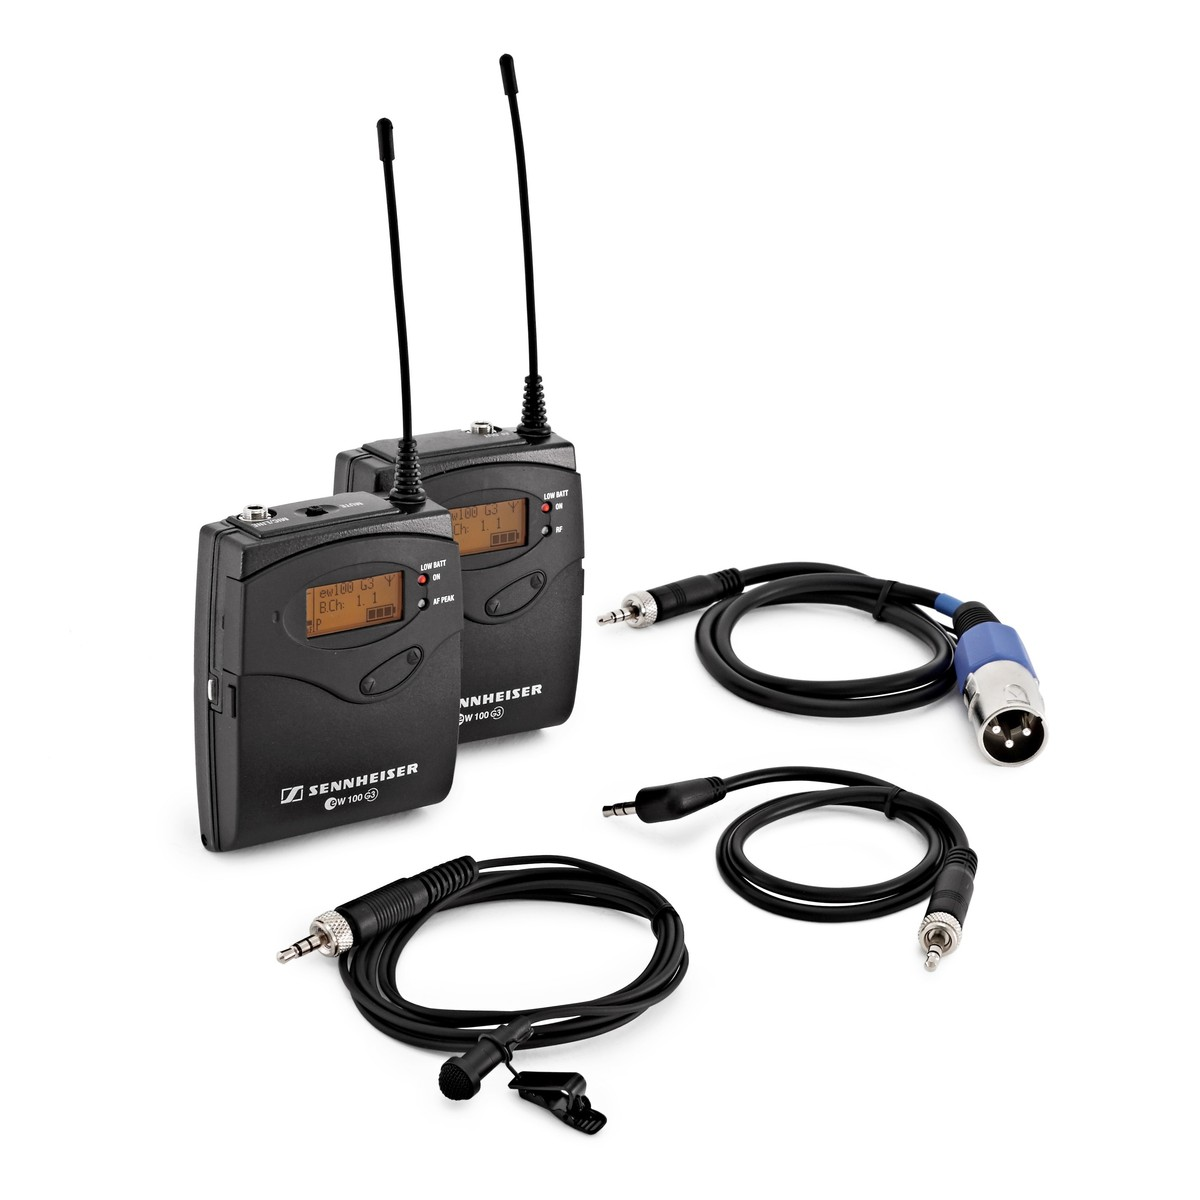 sennheiser ew 112 p g3 gb wireless lavalier microphone system at. Black Bedroom Furniture Sets. Home Design Ideas